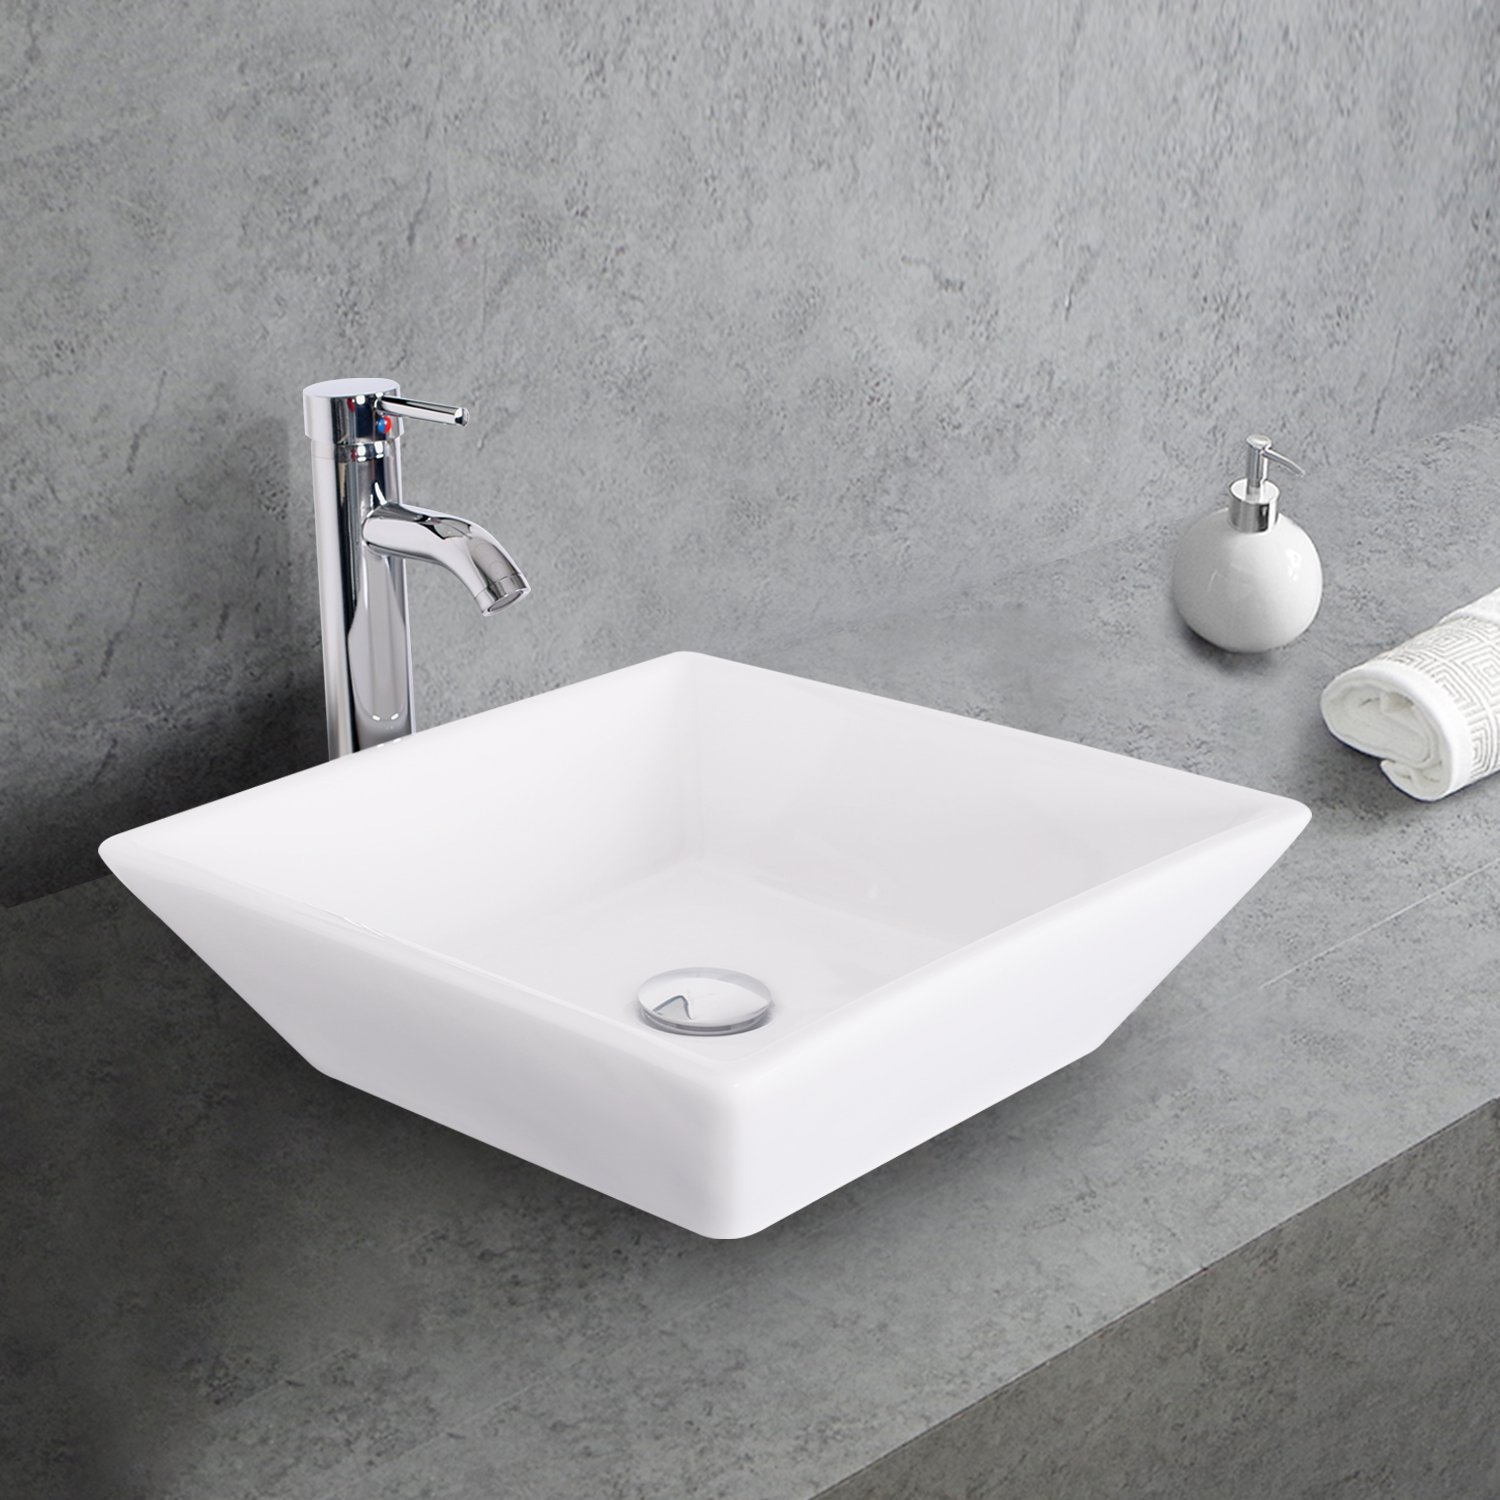 1.5 GPM Counter Top White Square Porcelain Ceramic Sink Bowl White Square Bathroom Vessel Sink Combo with Chrome Solid Brass Faucet and Pop Up Drain for Bath